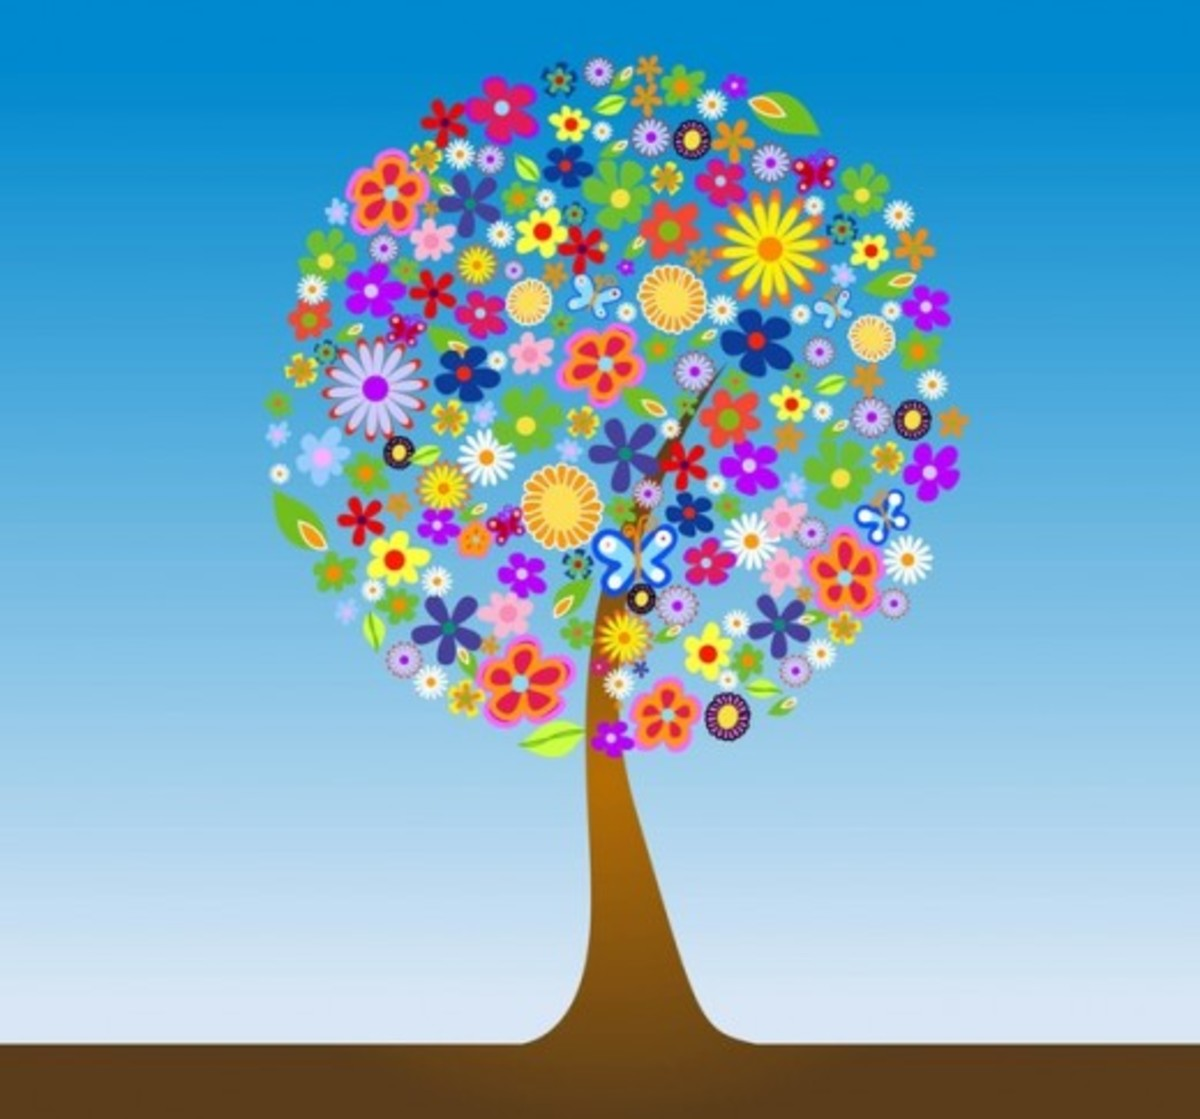 Clip Art Tree Made of Flowers and Butterflies